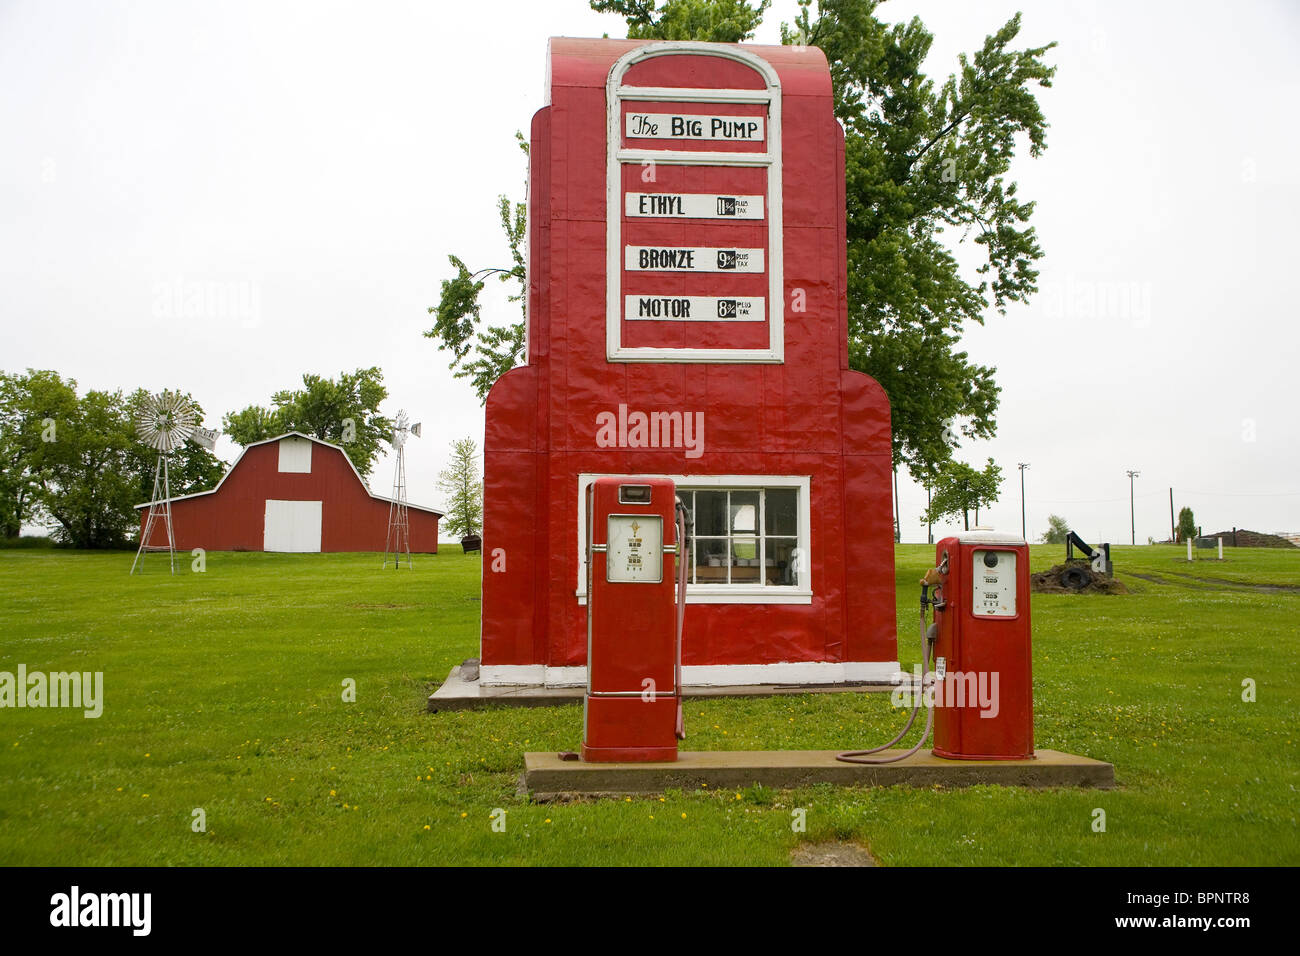 The Big Pump in King City, Missouri - Stock Image